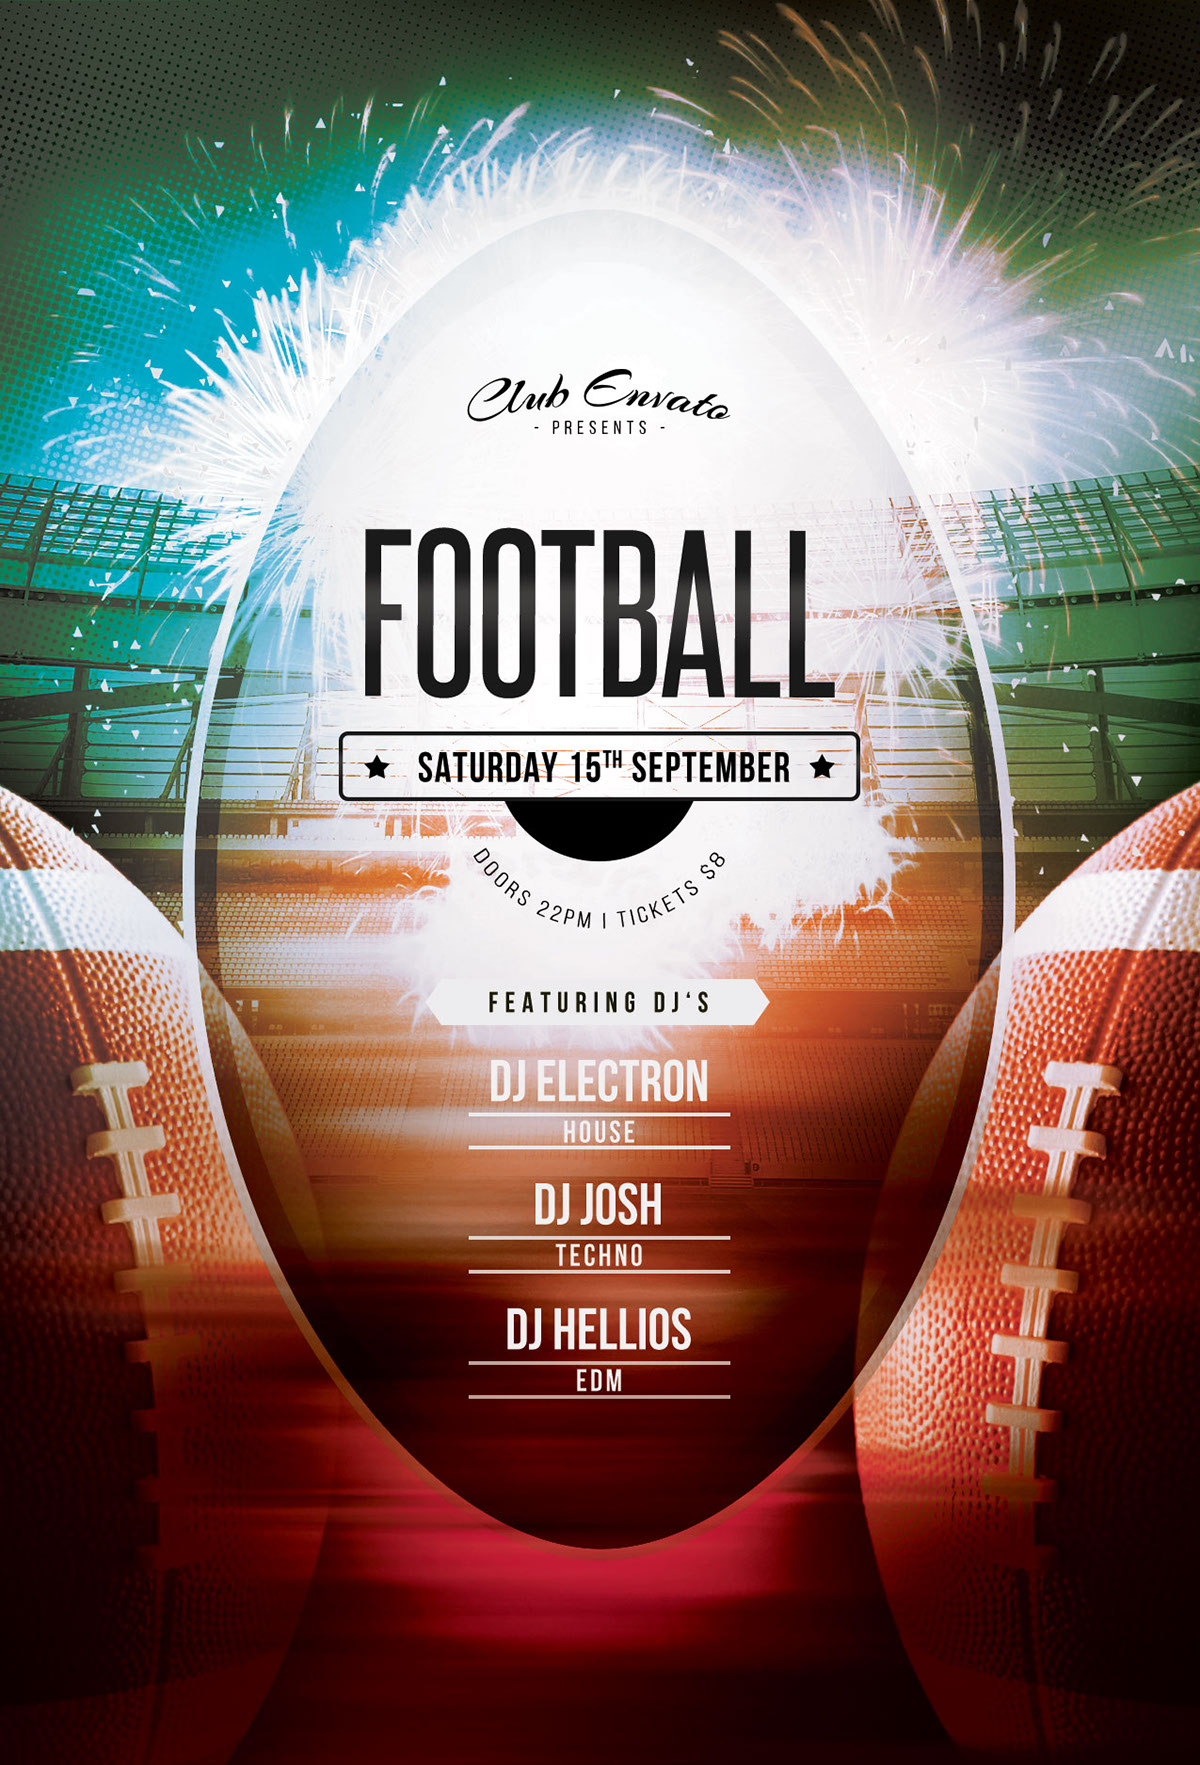 This Psd Flyer Template Is Designed To Promote A Football Event.